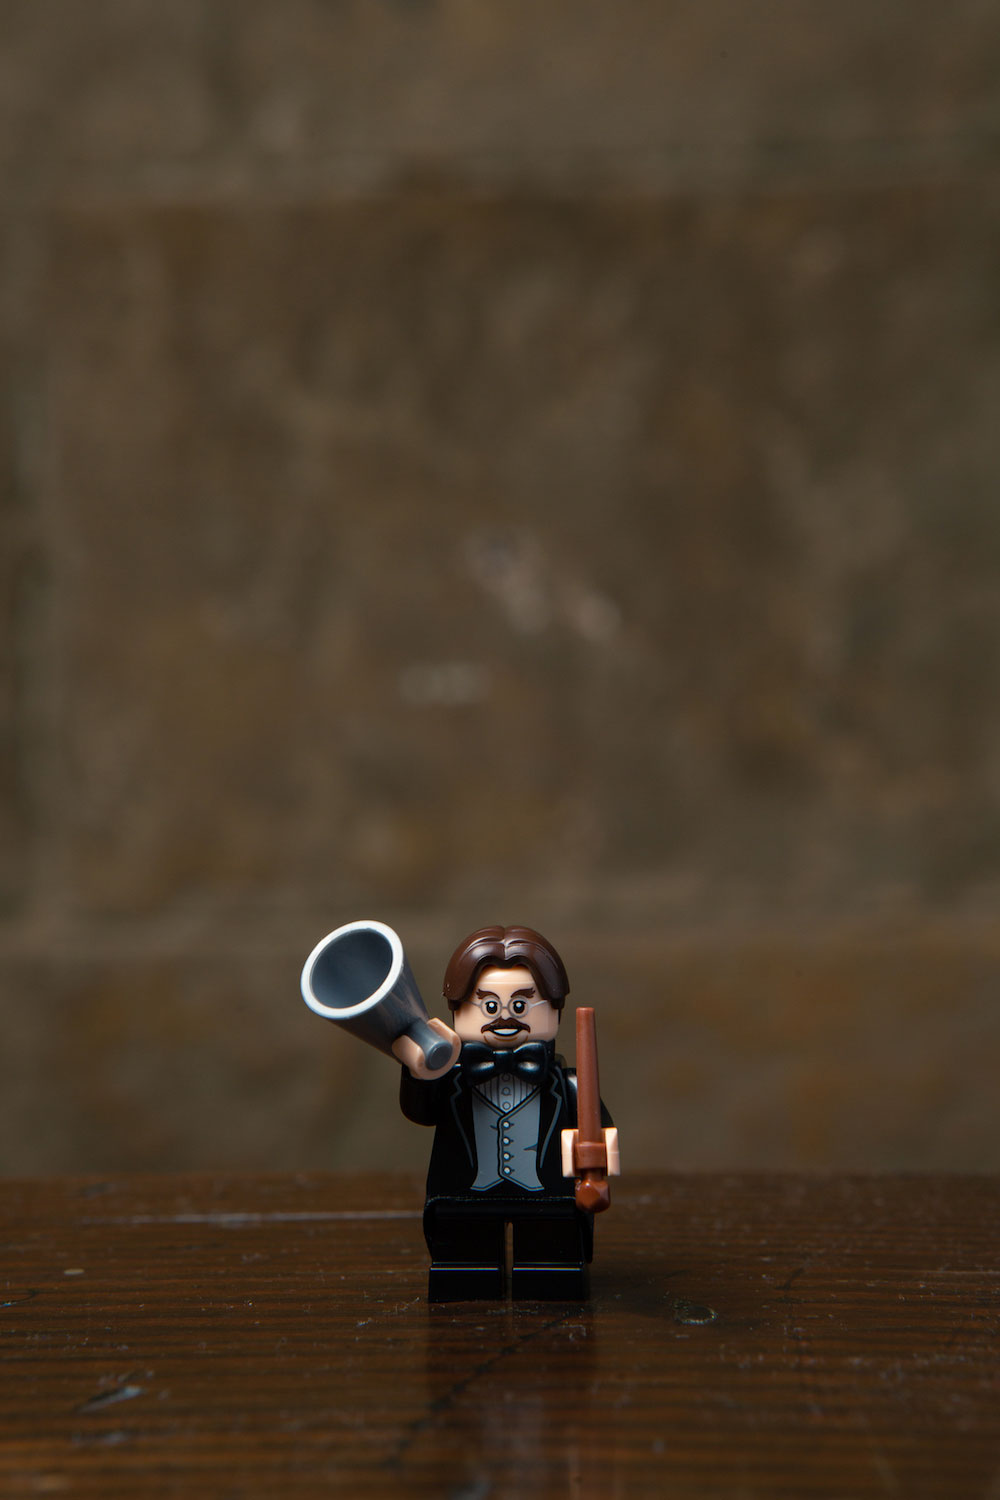 Professor Flitwick is featured with his bullhorn? Wizarding choir practice must be getting a little too loud…